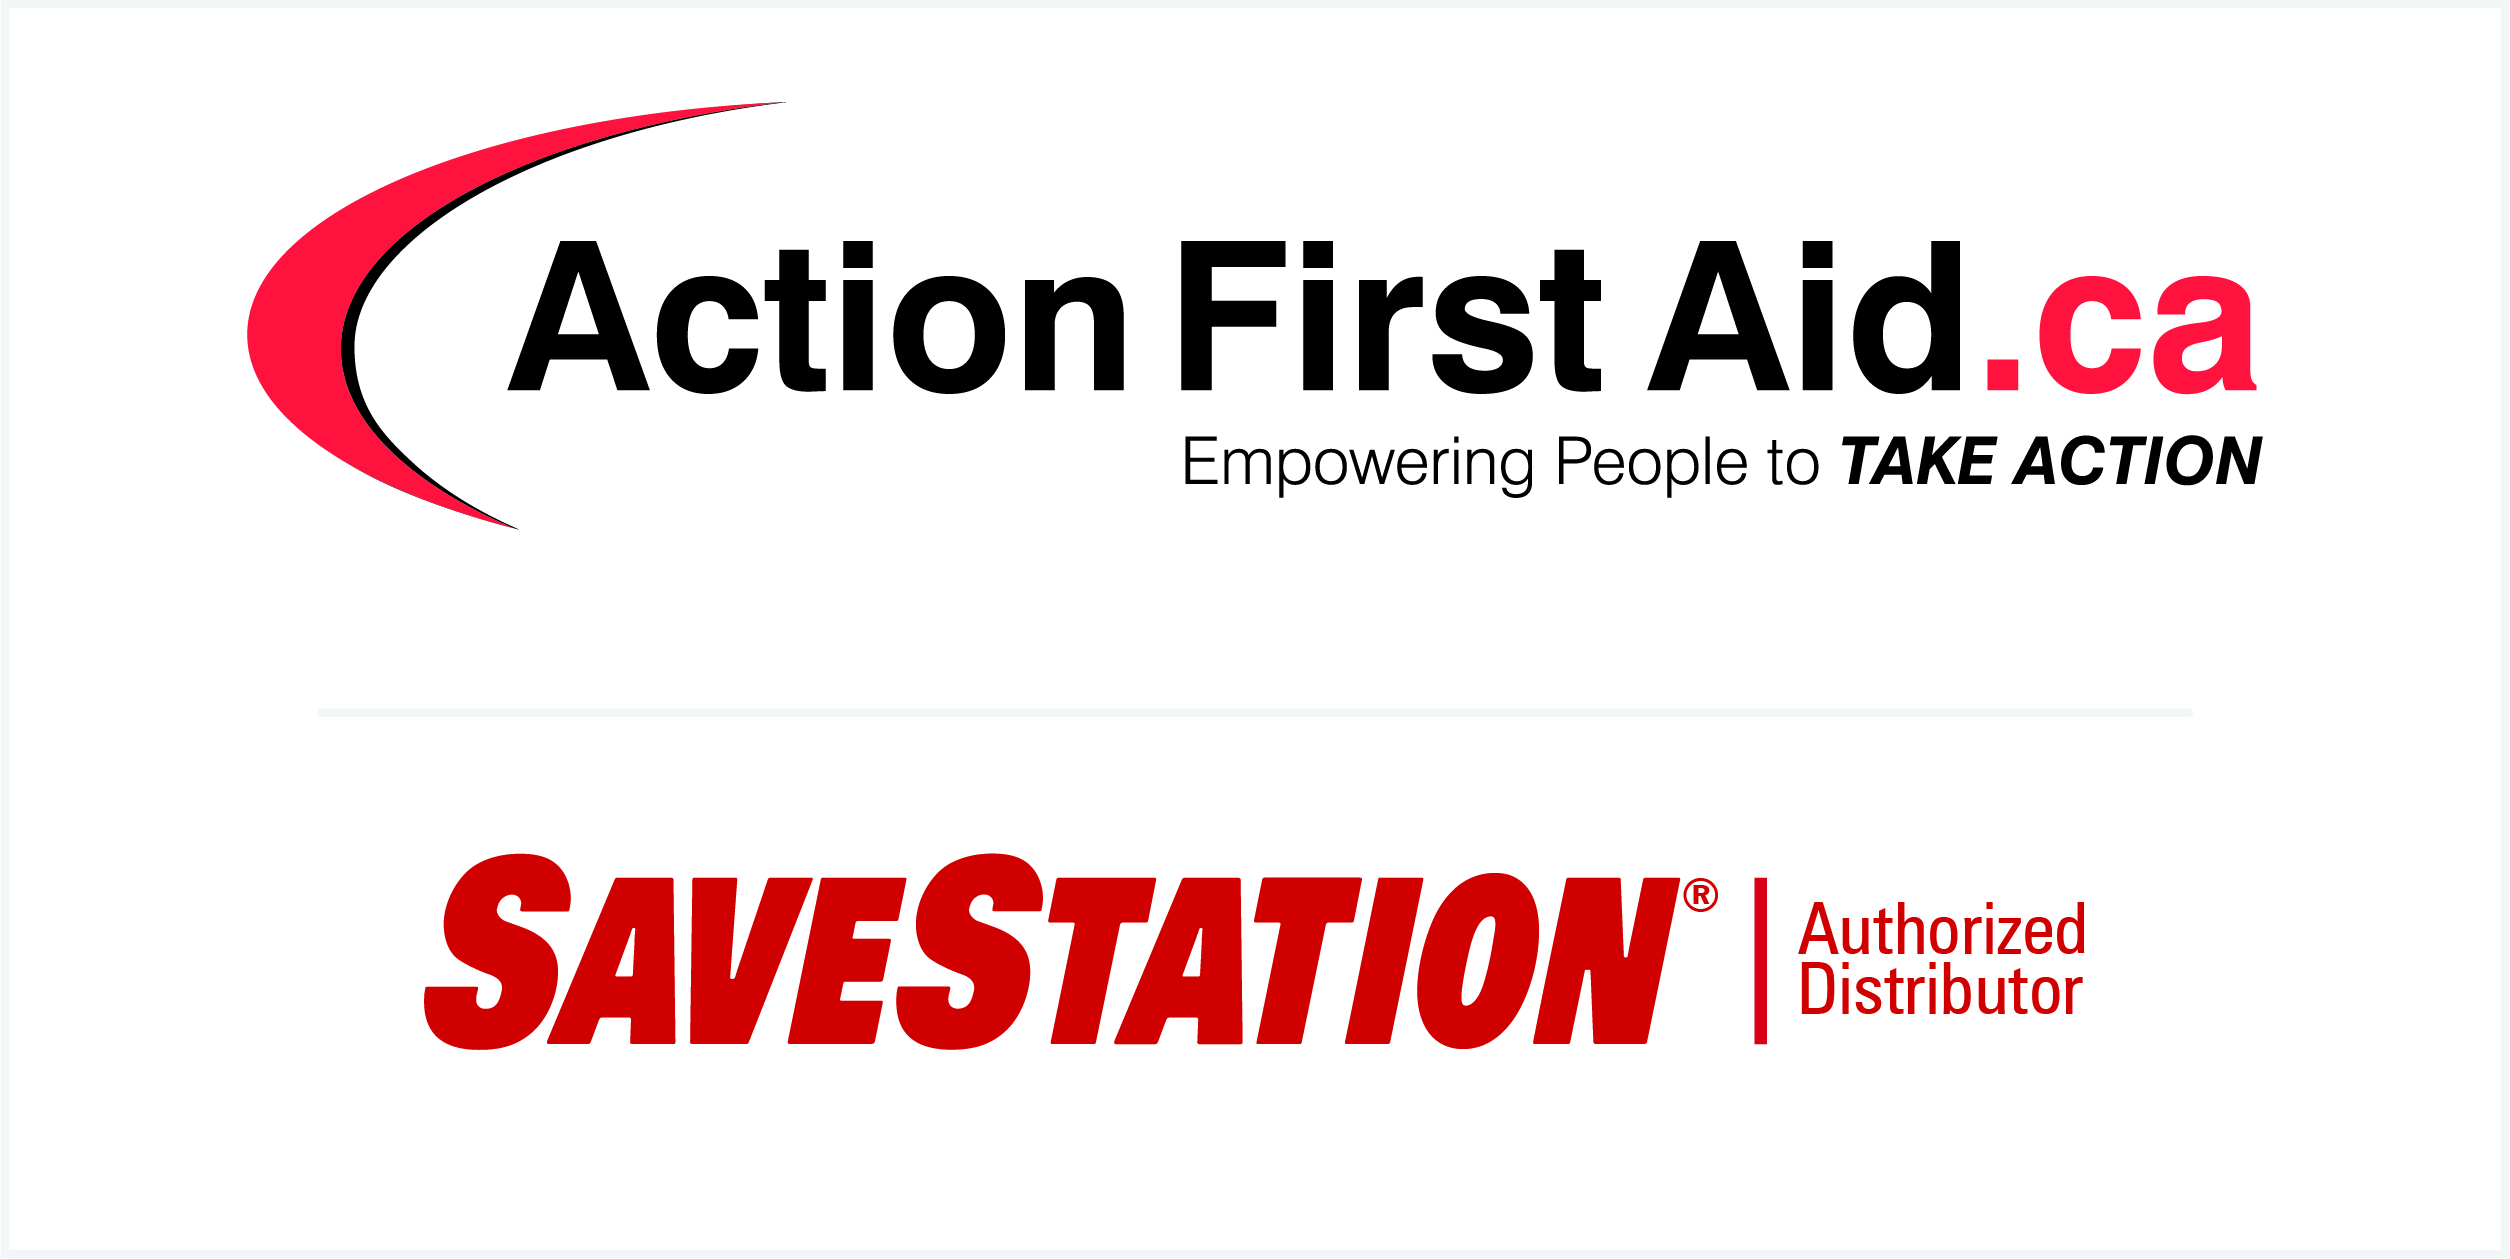 Action First Aid